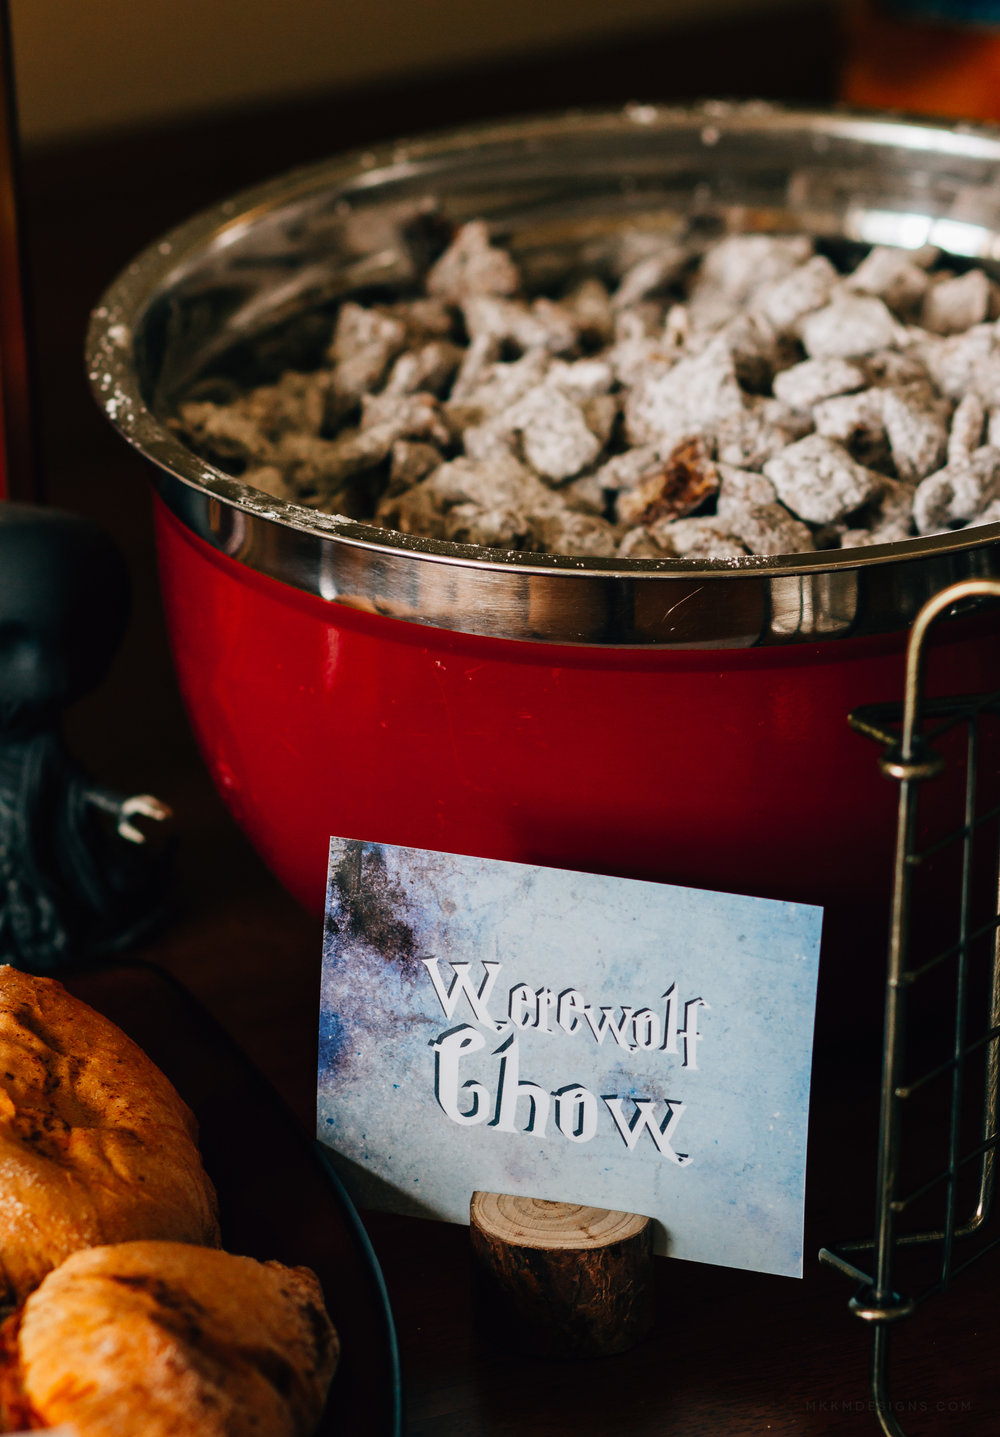 Werewolf chow at a Harry Potter party. Free printable food card designs from shopmkkm.com